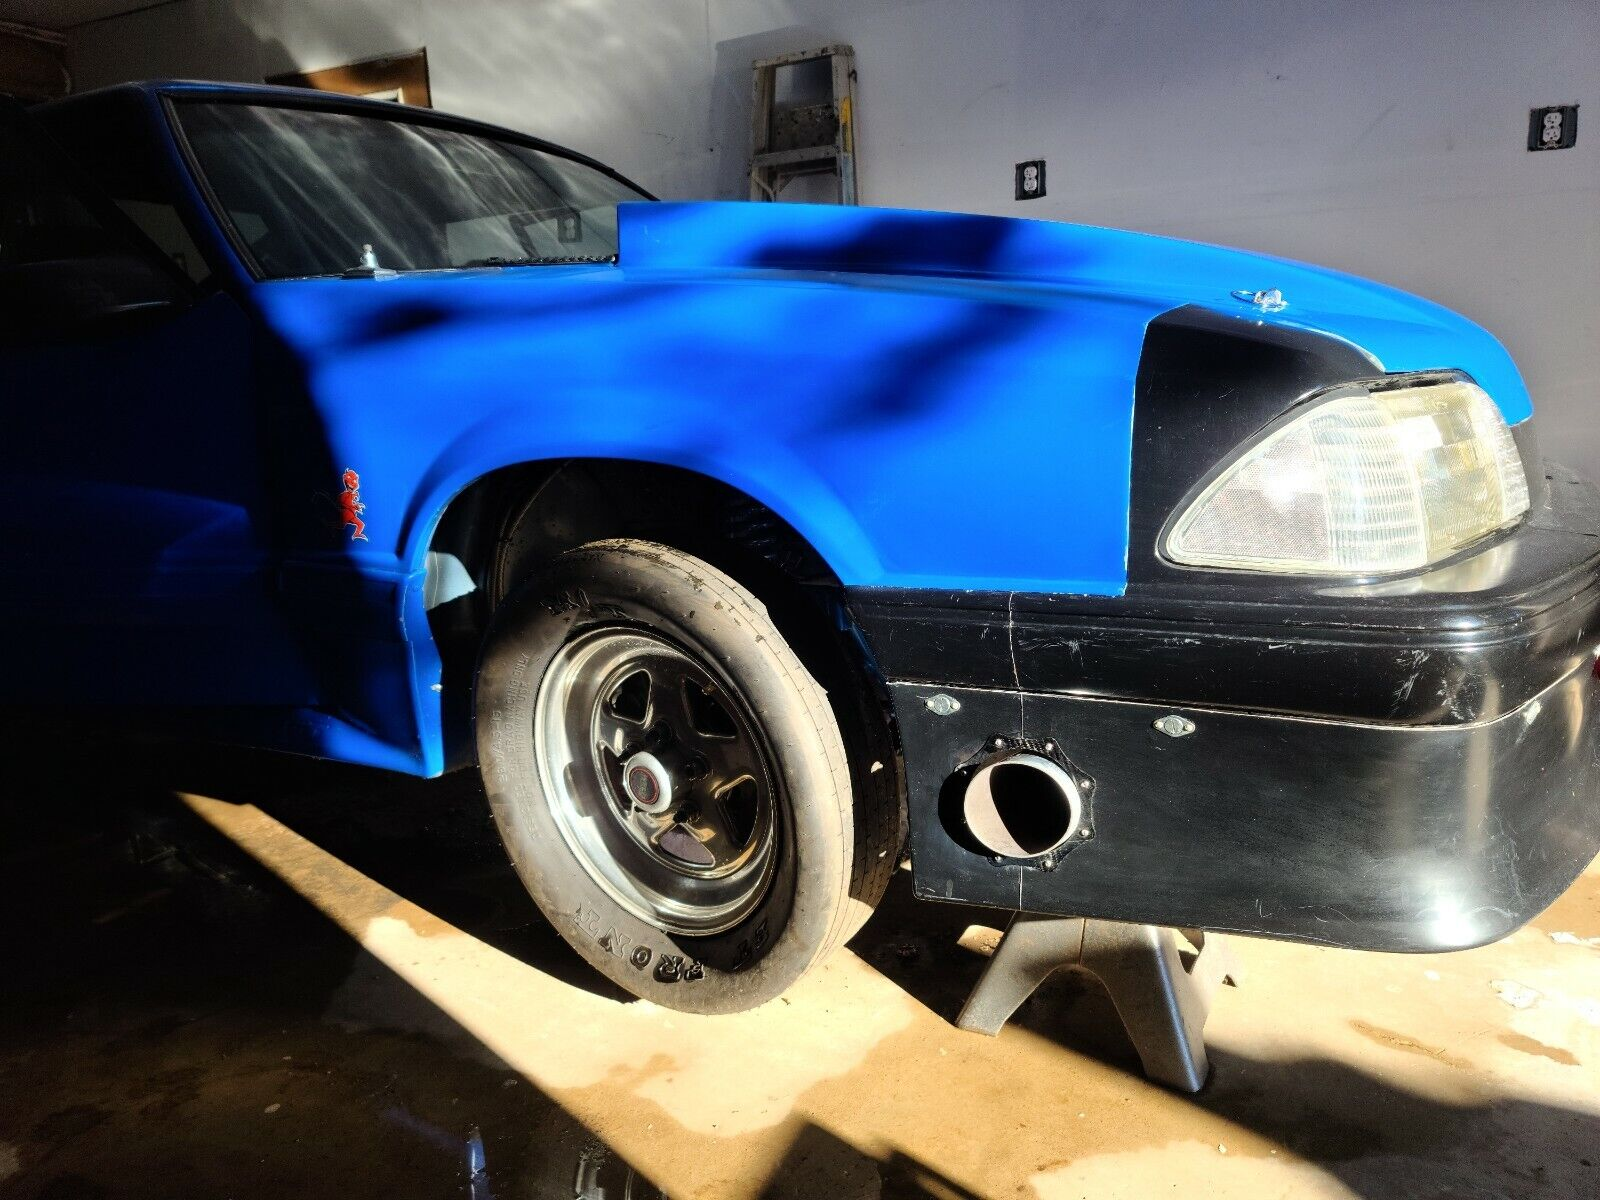 1989 Ford Mustang GT Twin Turbo Outlaw 8.5 Drag Car